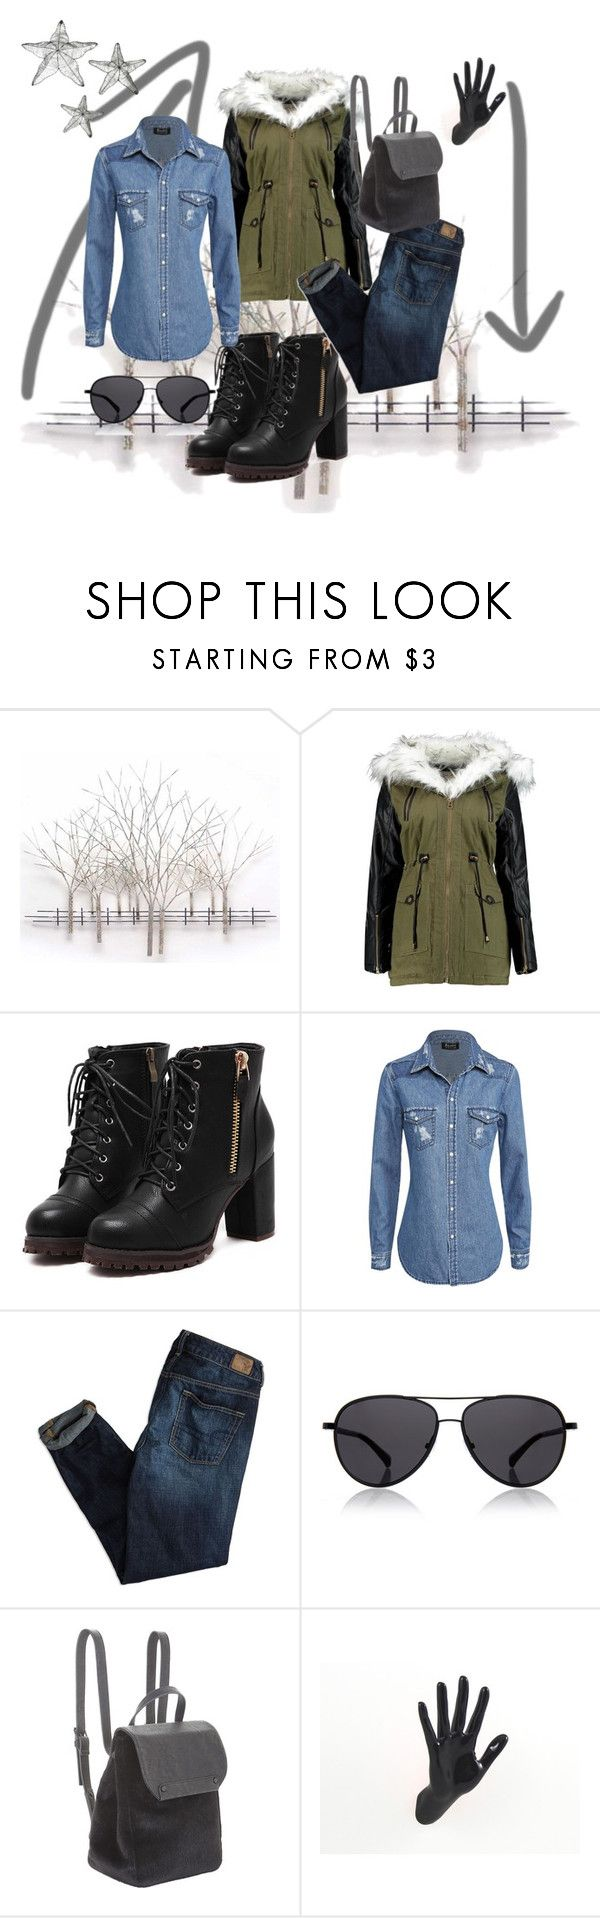 """""""http://www.polyvore.com/cgi/group.join?id=198631."""" by emina-h15 ❤ liked on Polyvore featuring moda, Home Decorators Collection, American Eagle Outfitters, The Row, BCBGeneration y Thelermont Hupton"""